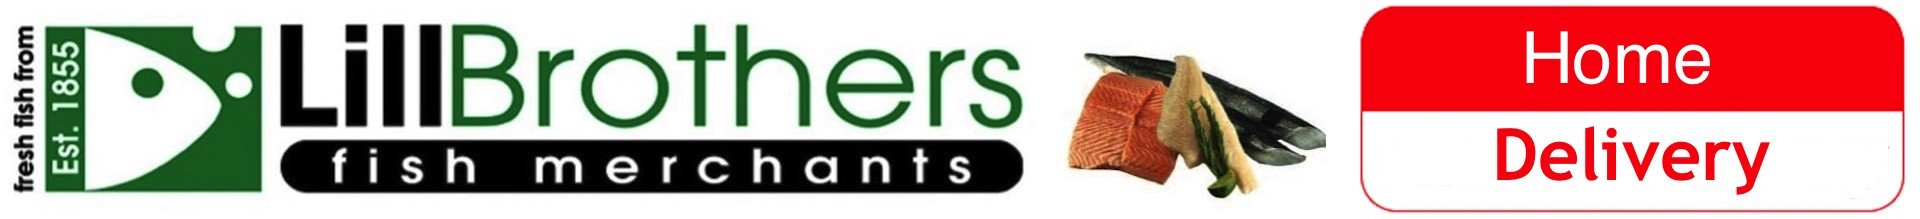 Header / Footer Lill Brothers of Bradford, West Yorkshire established in the year 1855 are wholesale fish merchants, one of the oldest trading businesses in Bradford. We have expanded our range to include various products like fruit, veg etc all available for local free home delivery